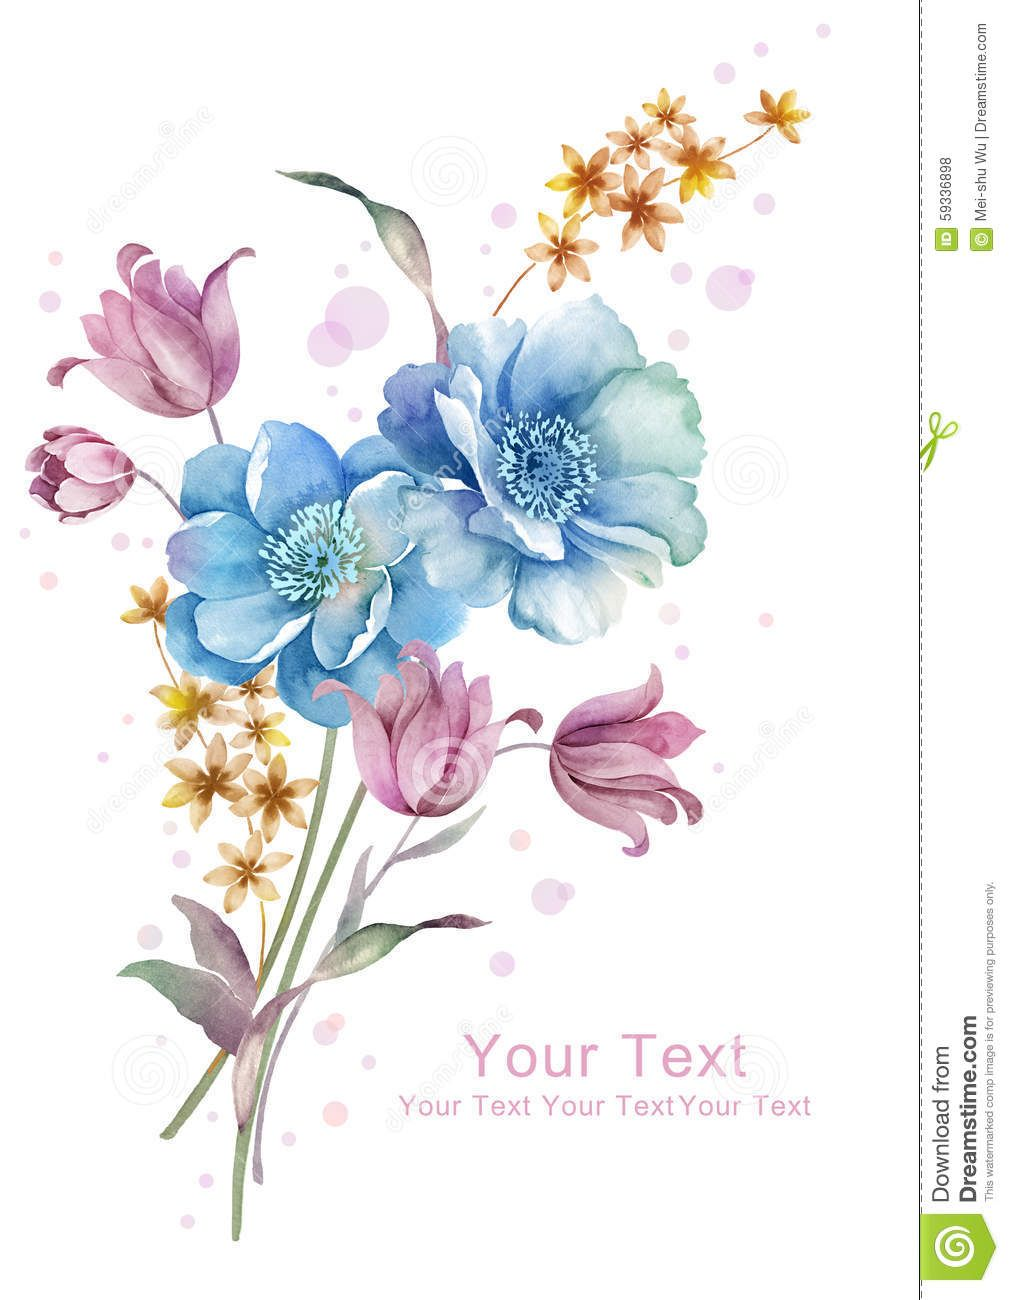 Watercolor Illustration Flower Bouquet In Simple Background Stock